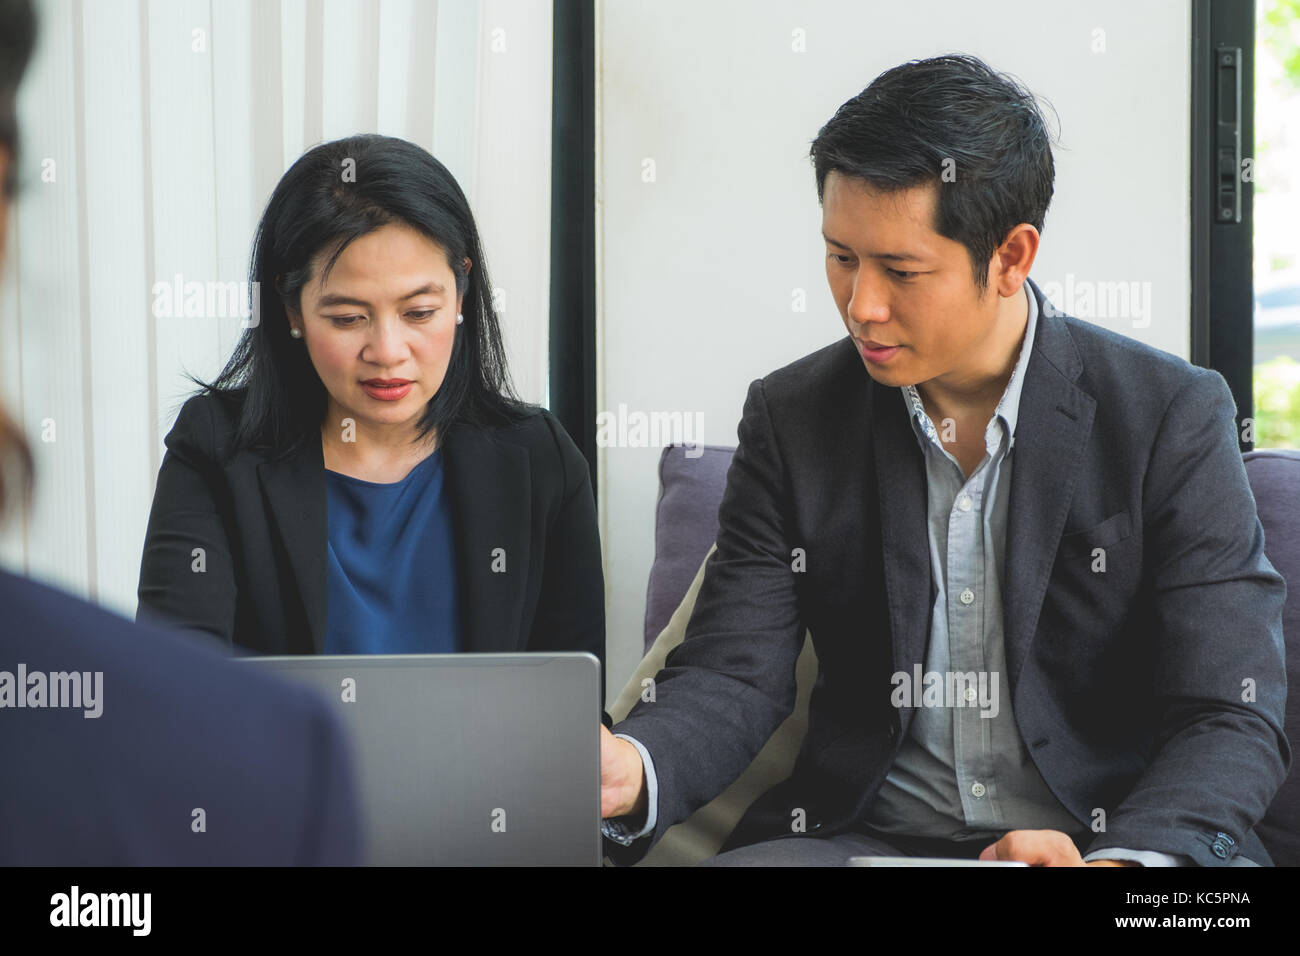 Business woman and man planing work at corporate meeting in office,Business conference concept. - Stock Image